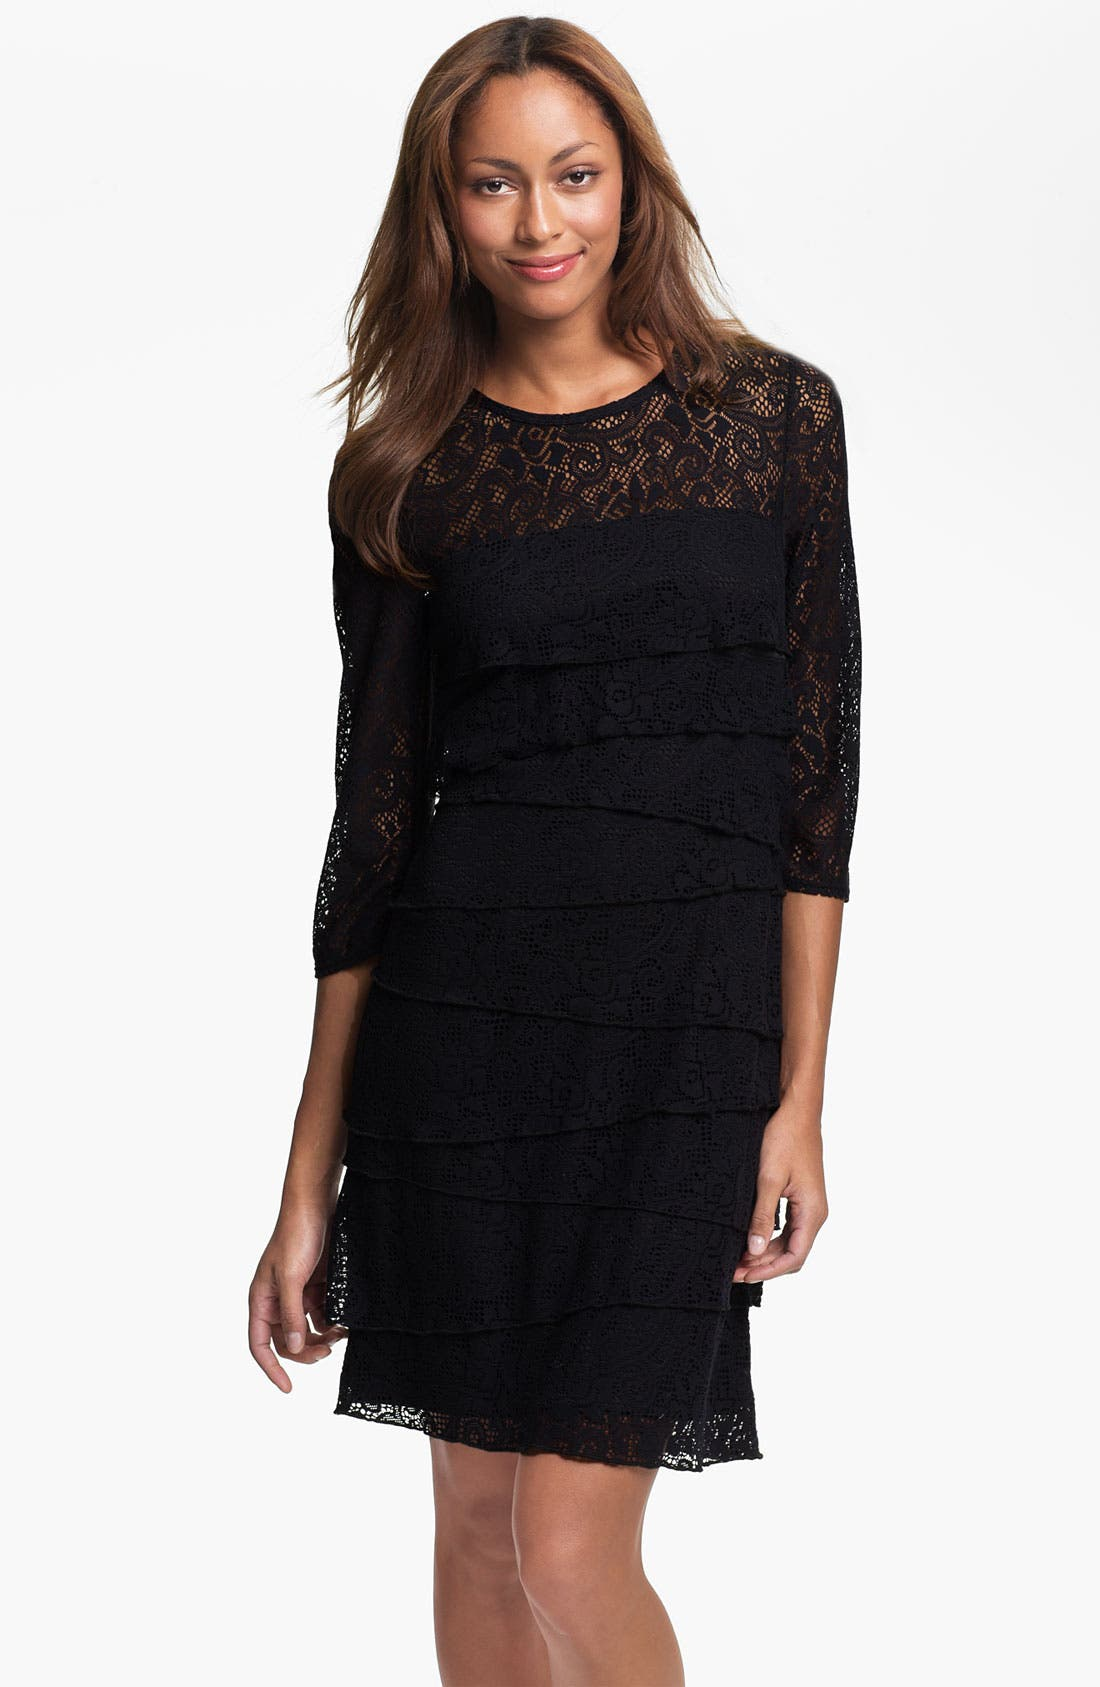 Alternate Image 1 Selected - Laundry by Shelli Segal Illusion Yoke Tiered Lace Dress (Petite)